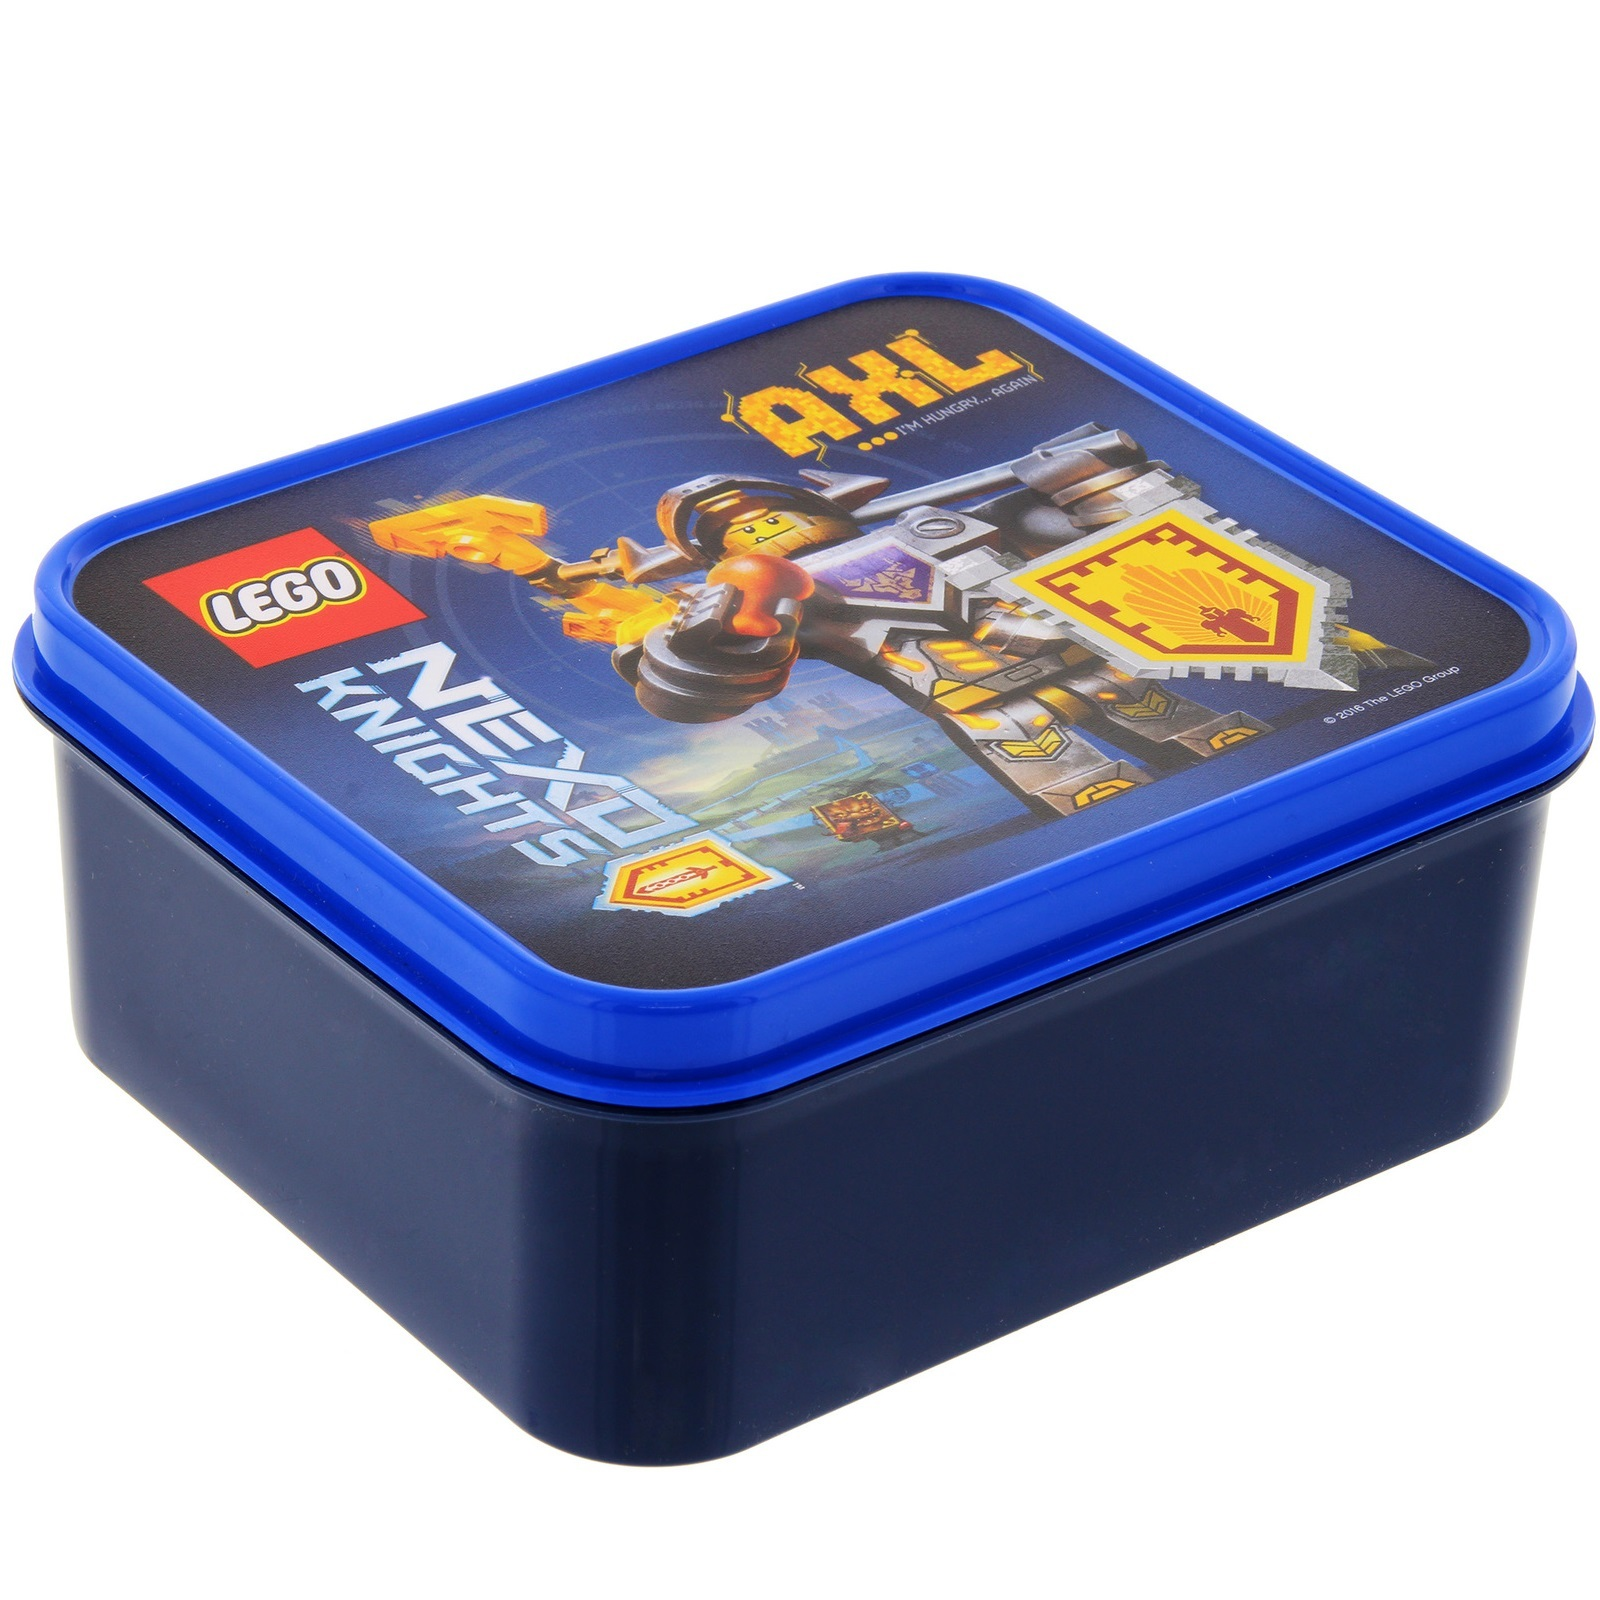 LEGO Lunch Box - Nexo Knights | at Mighty Ape Australia